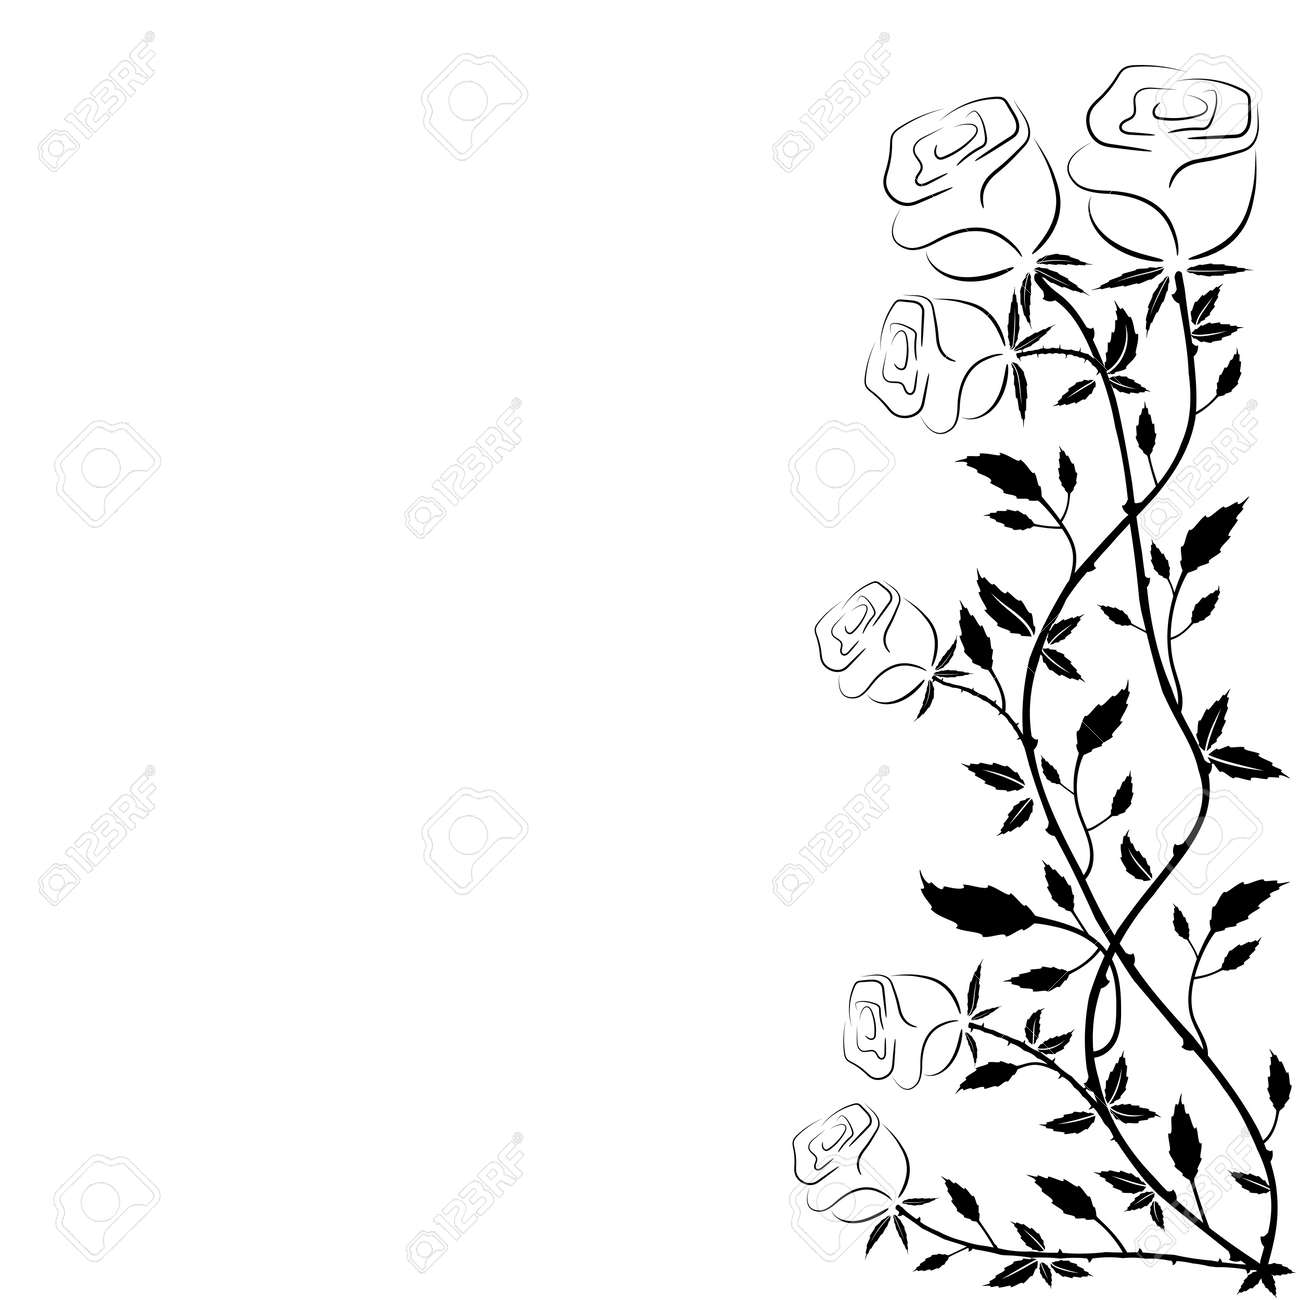 The Simple Frame Of Roses On A White Background Design For Greeting